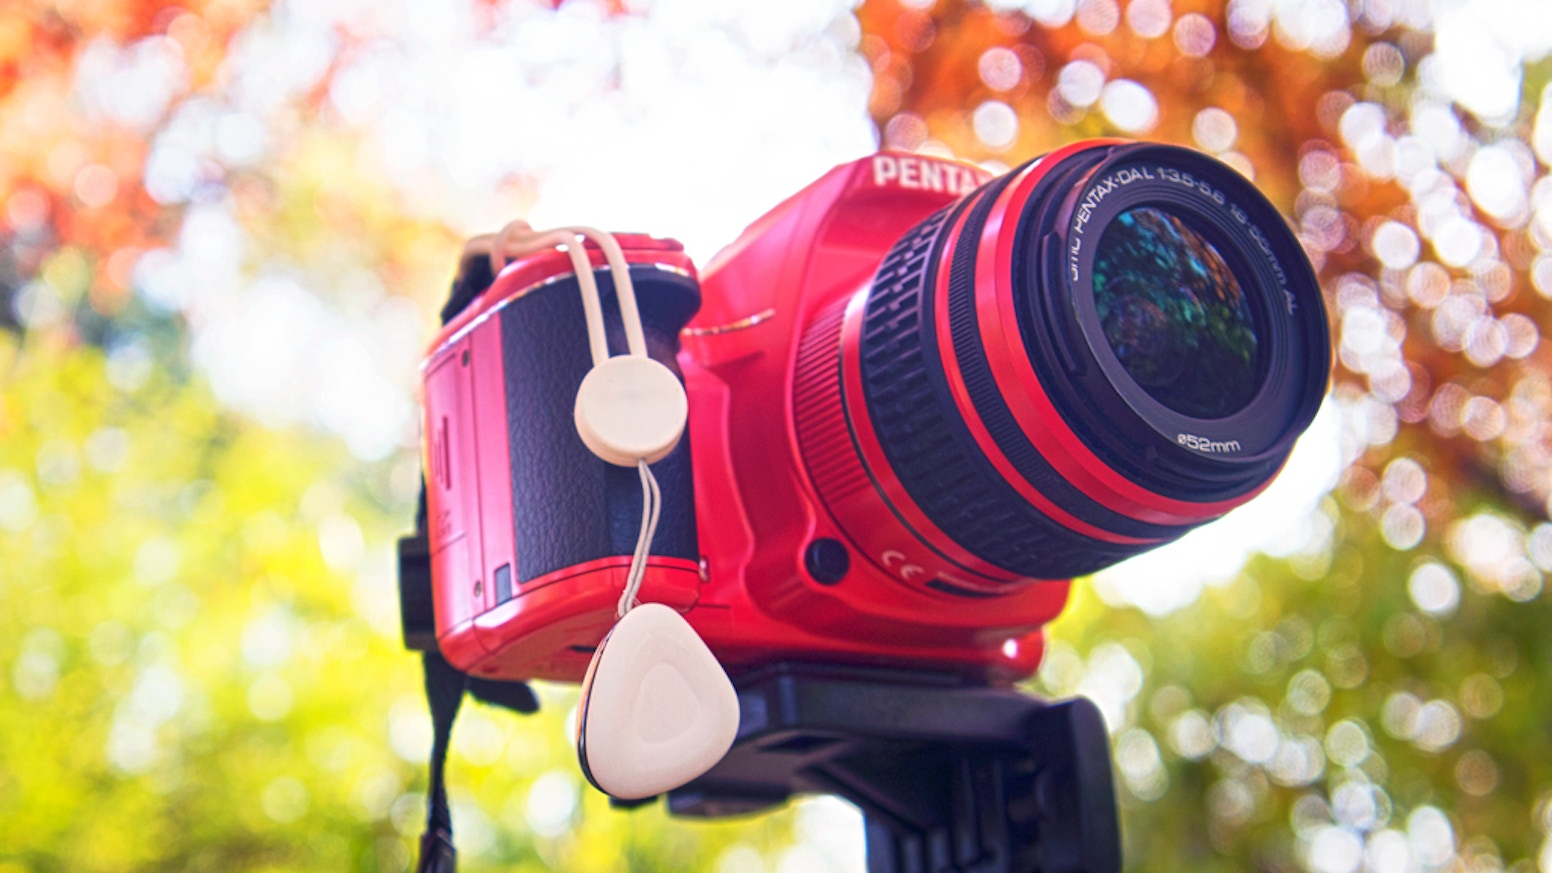 Maxstone Iphone Your Camera By Maxmax Inc Kickstarter Lens And Circuit Board Digital Photography Concept A Wireless Remote That Lets You Control Dslr Through Smartphone Much More